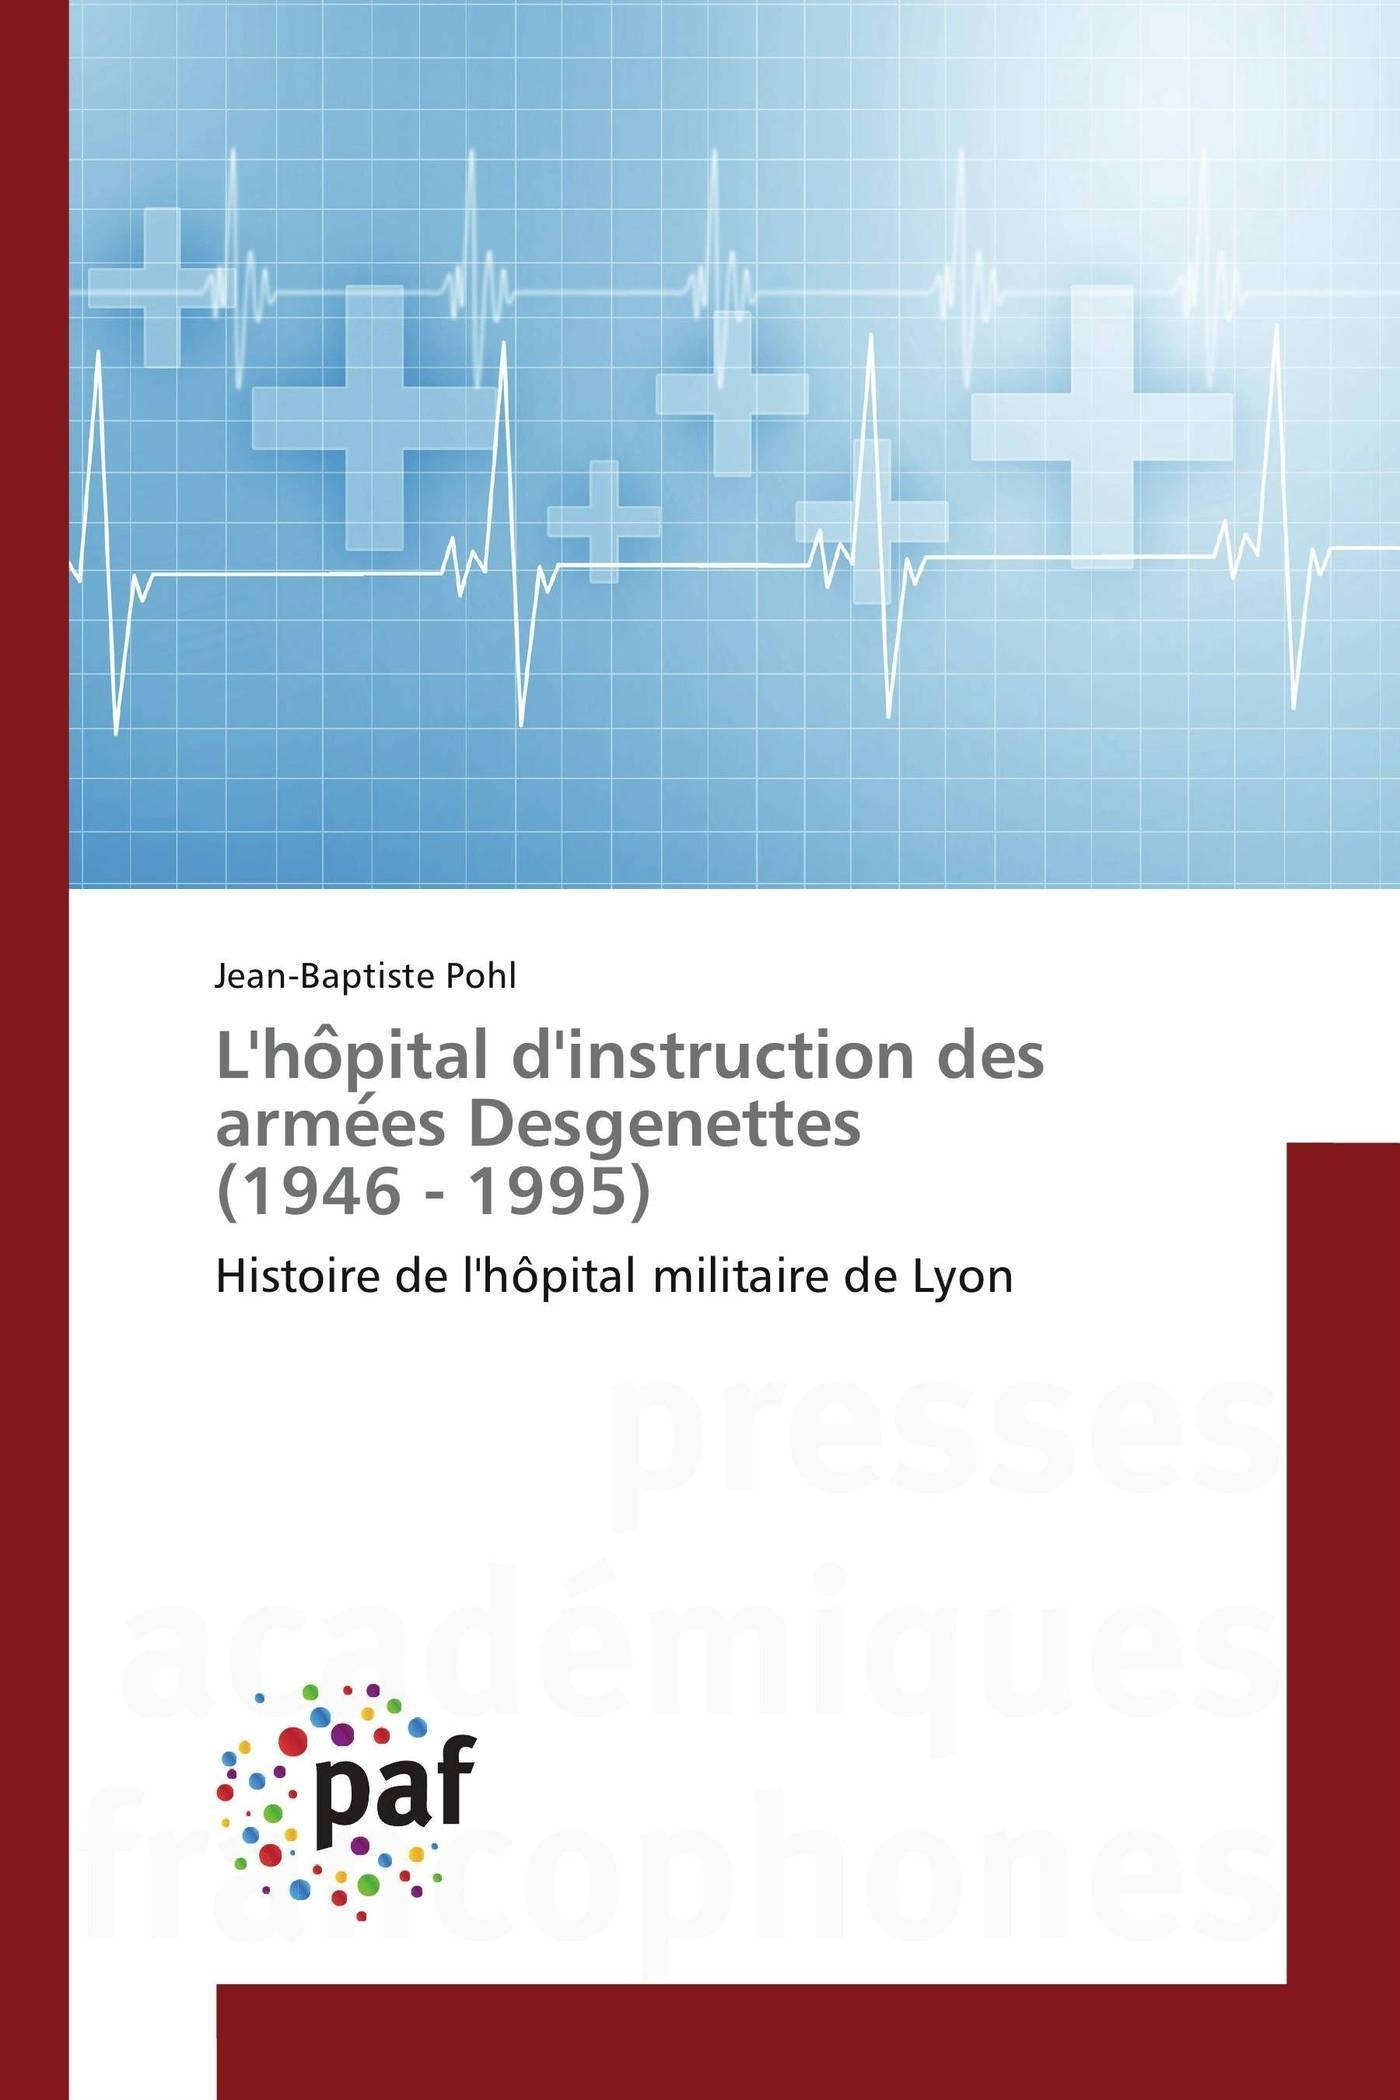 L'HO PITAL D'INSTRUCTION DES ARME ES DESGENETTES (1946 - 1995)